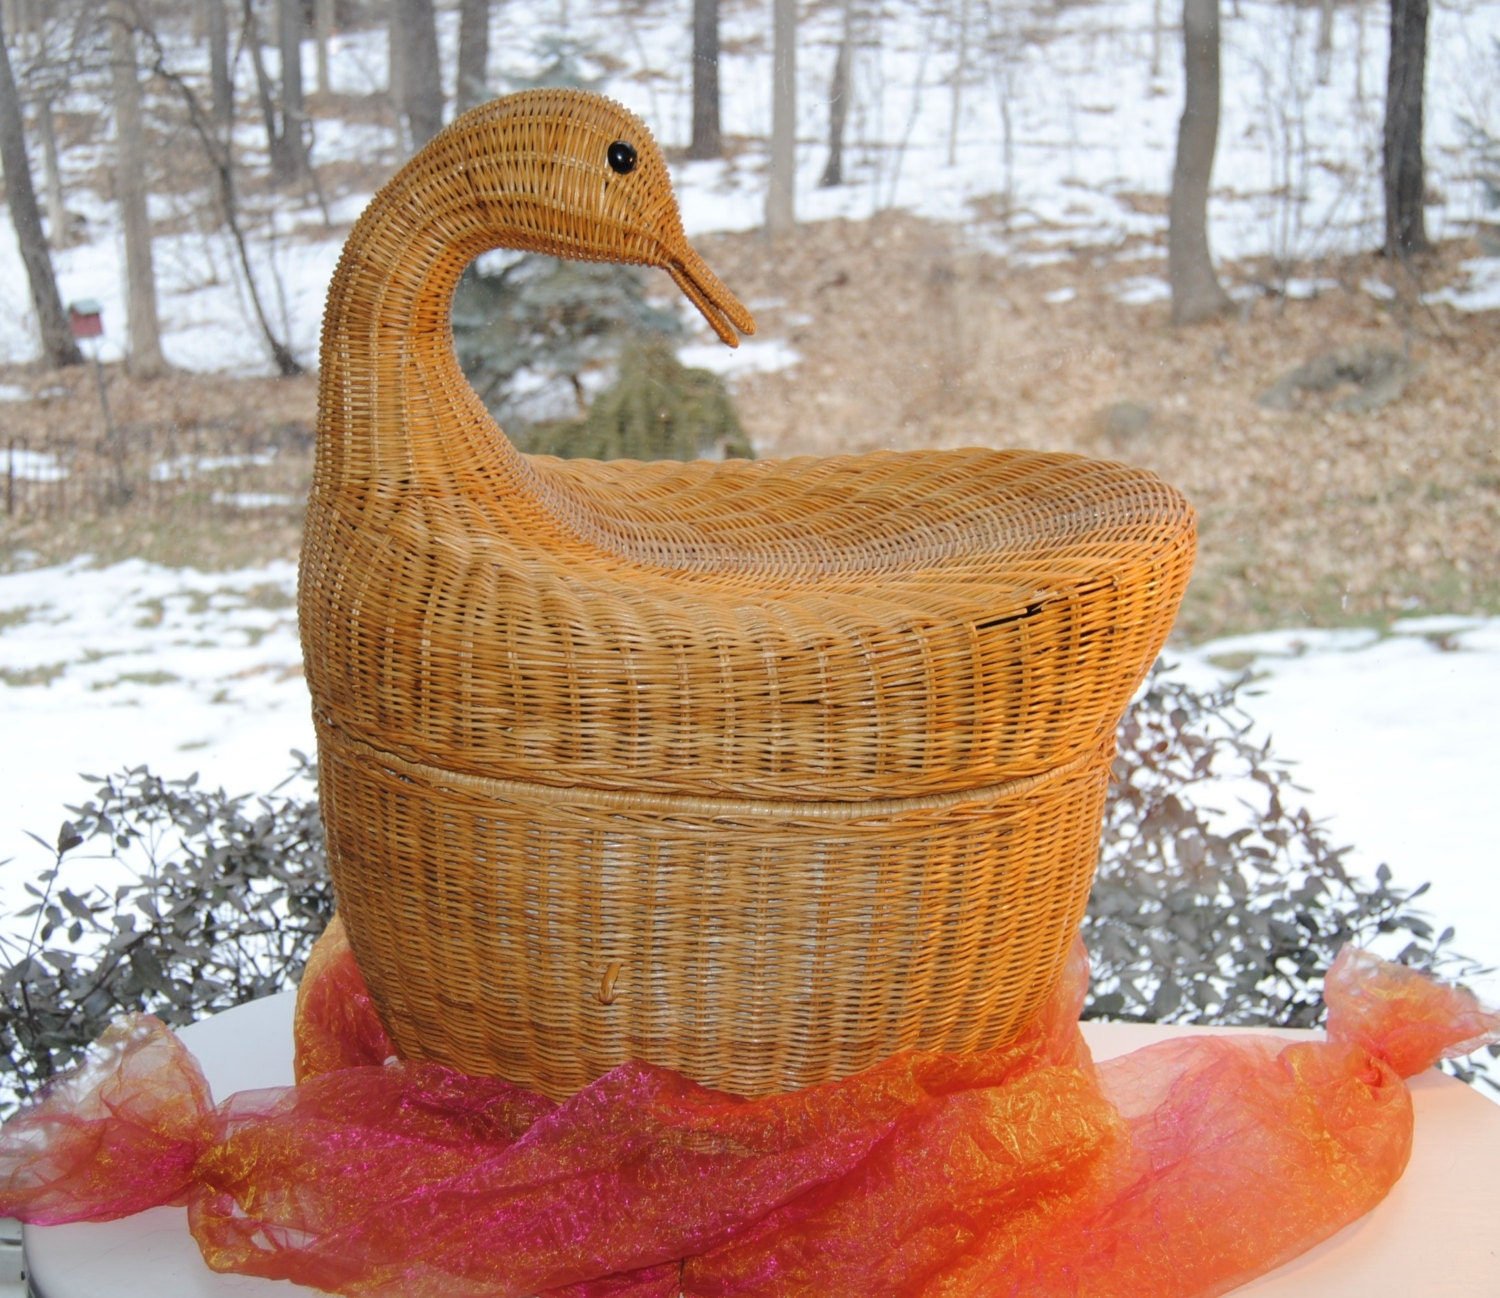 Sale Vintage Picnic Basket Duck Wicker Extra Large And By Ypsa